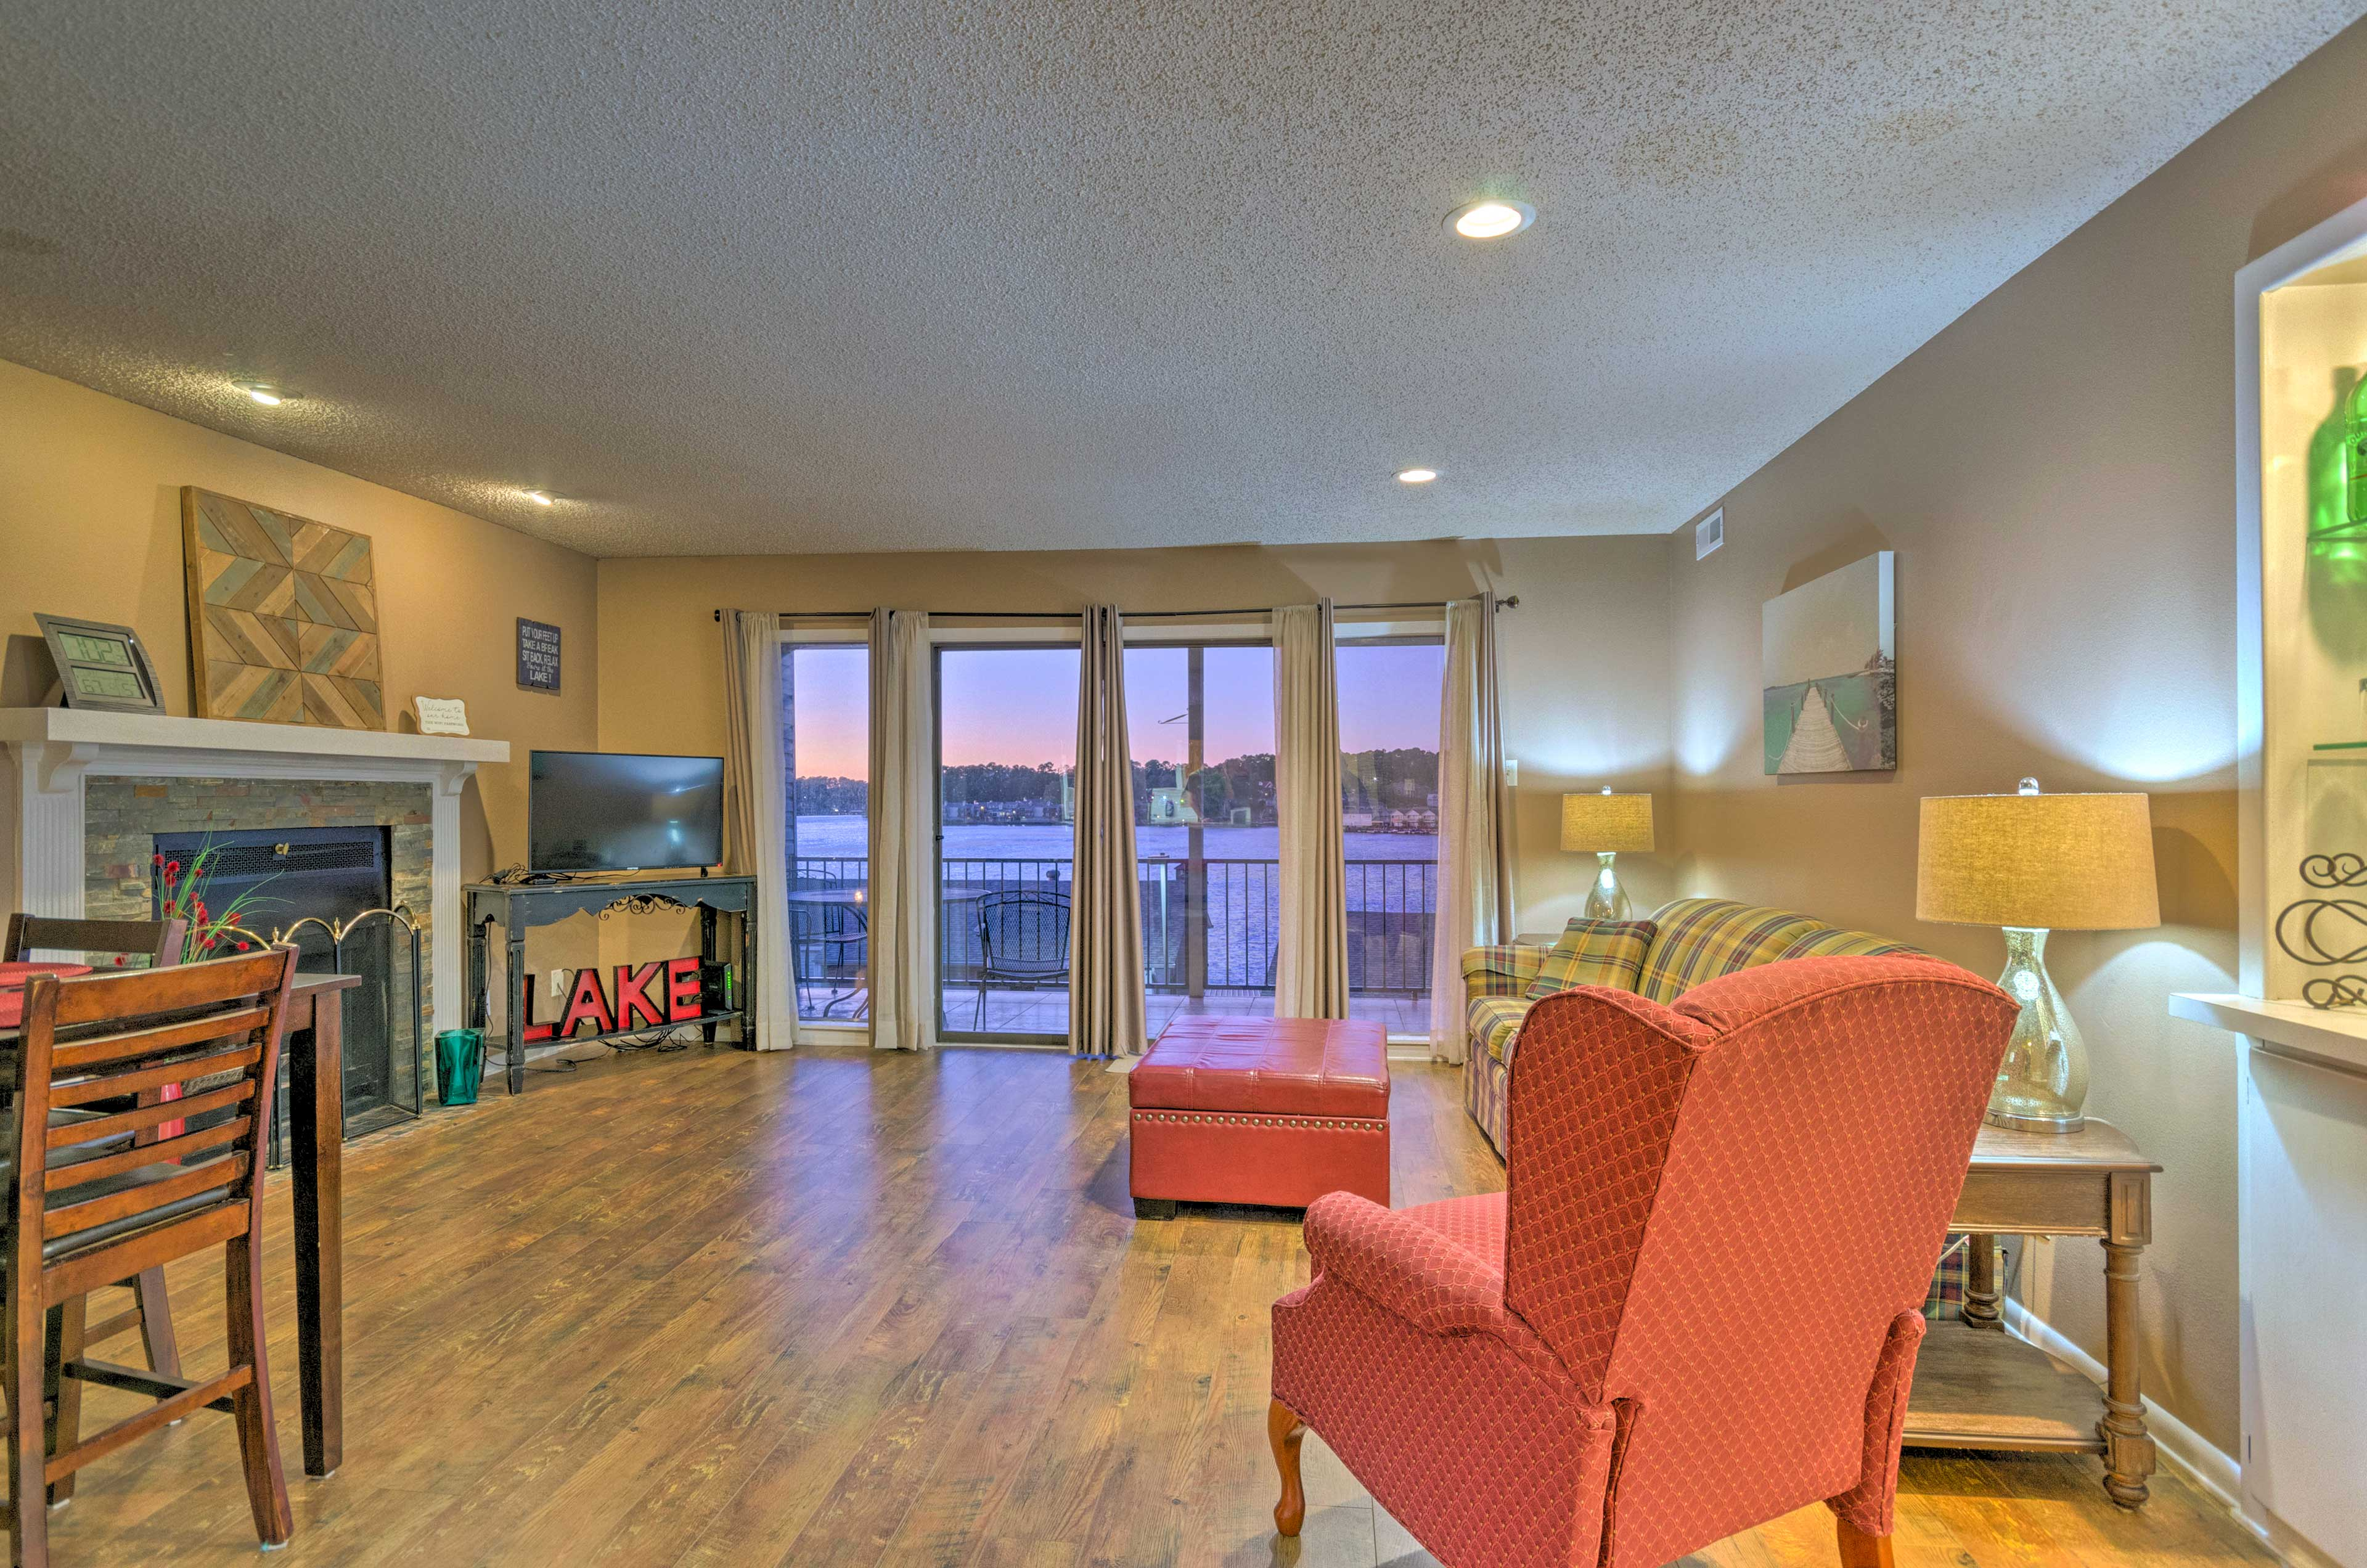 With 2 bedrooms and 2 bathrooms, this home is ideal for families.